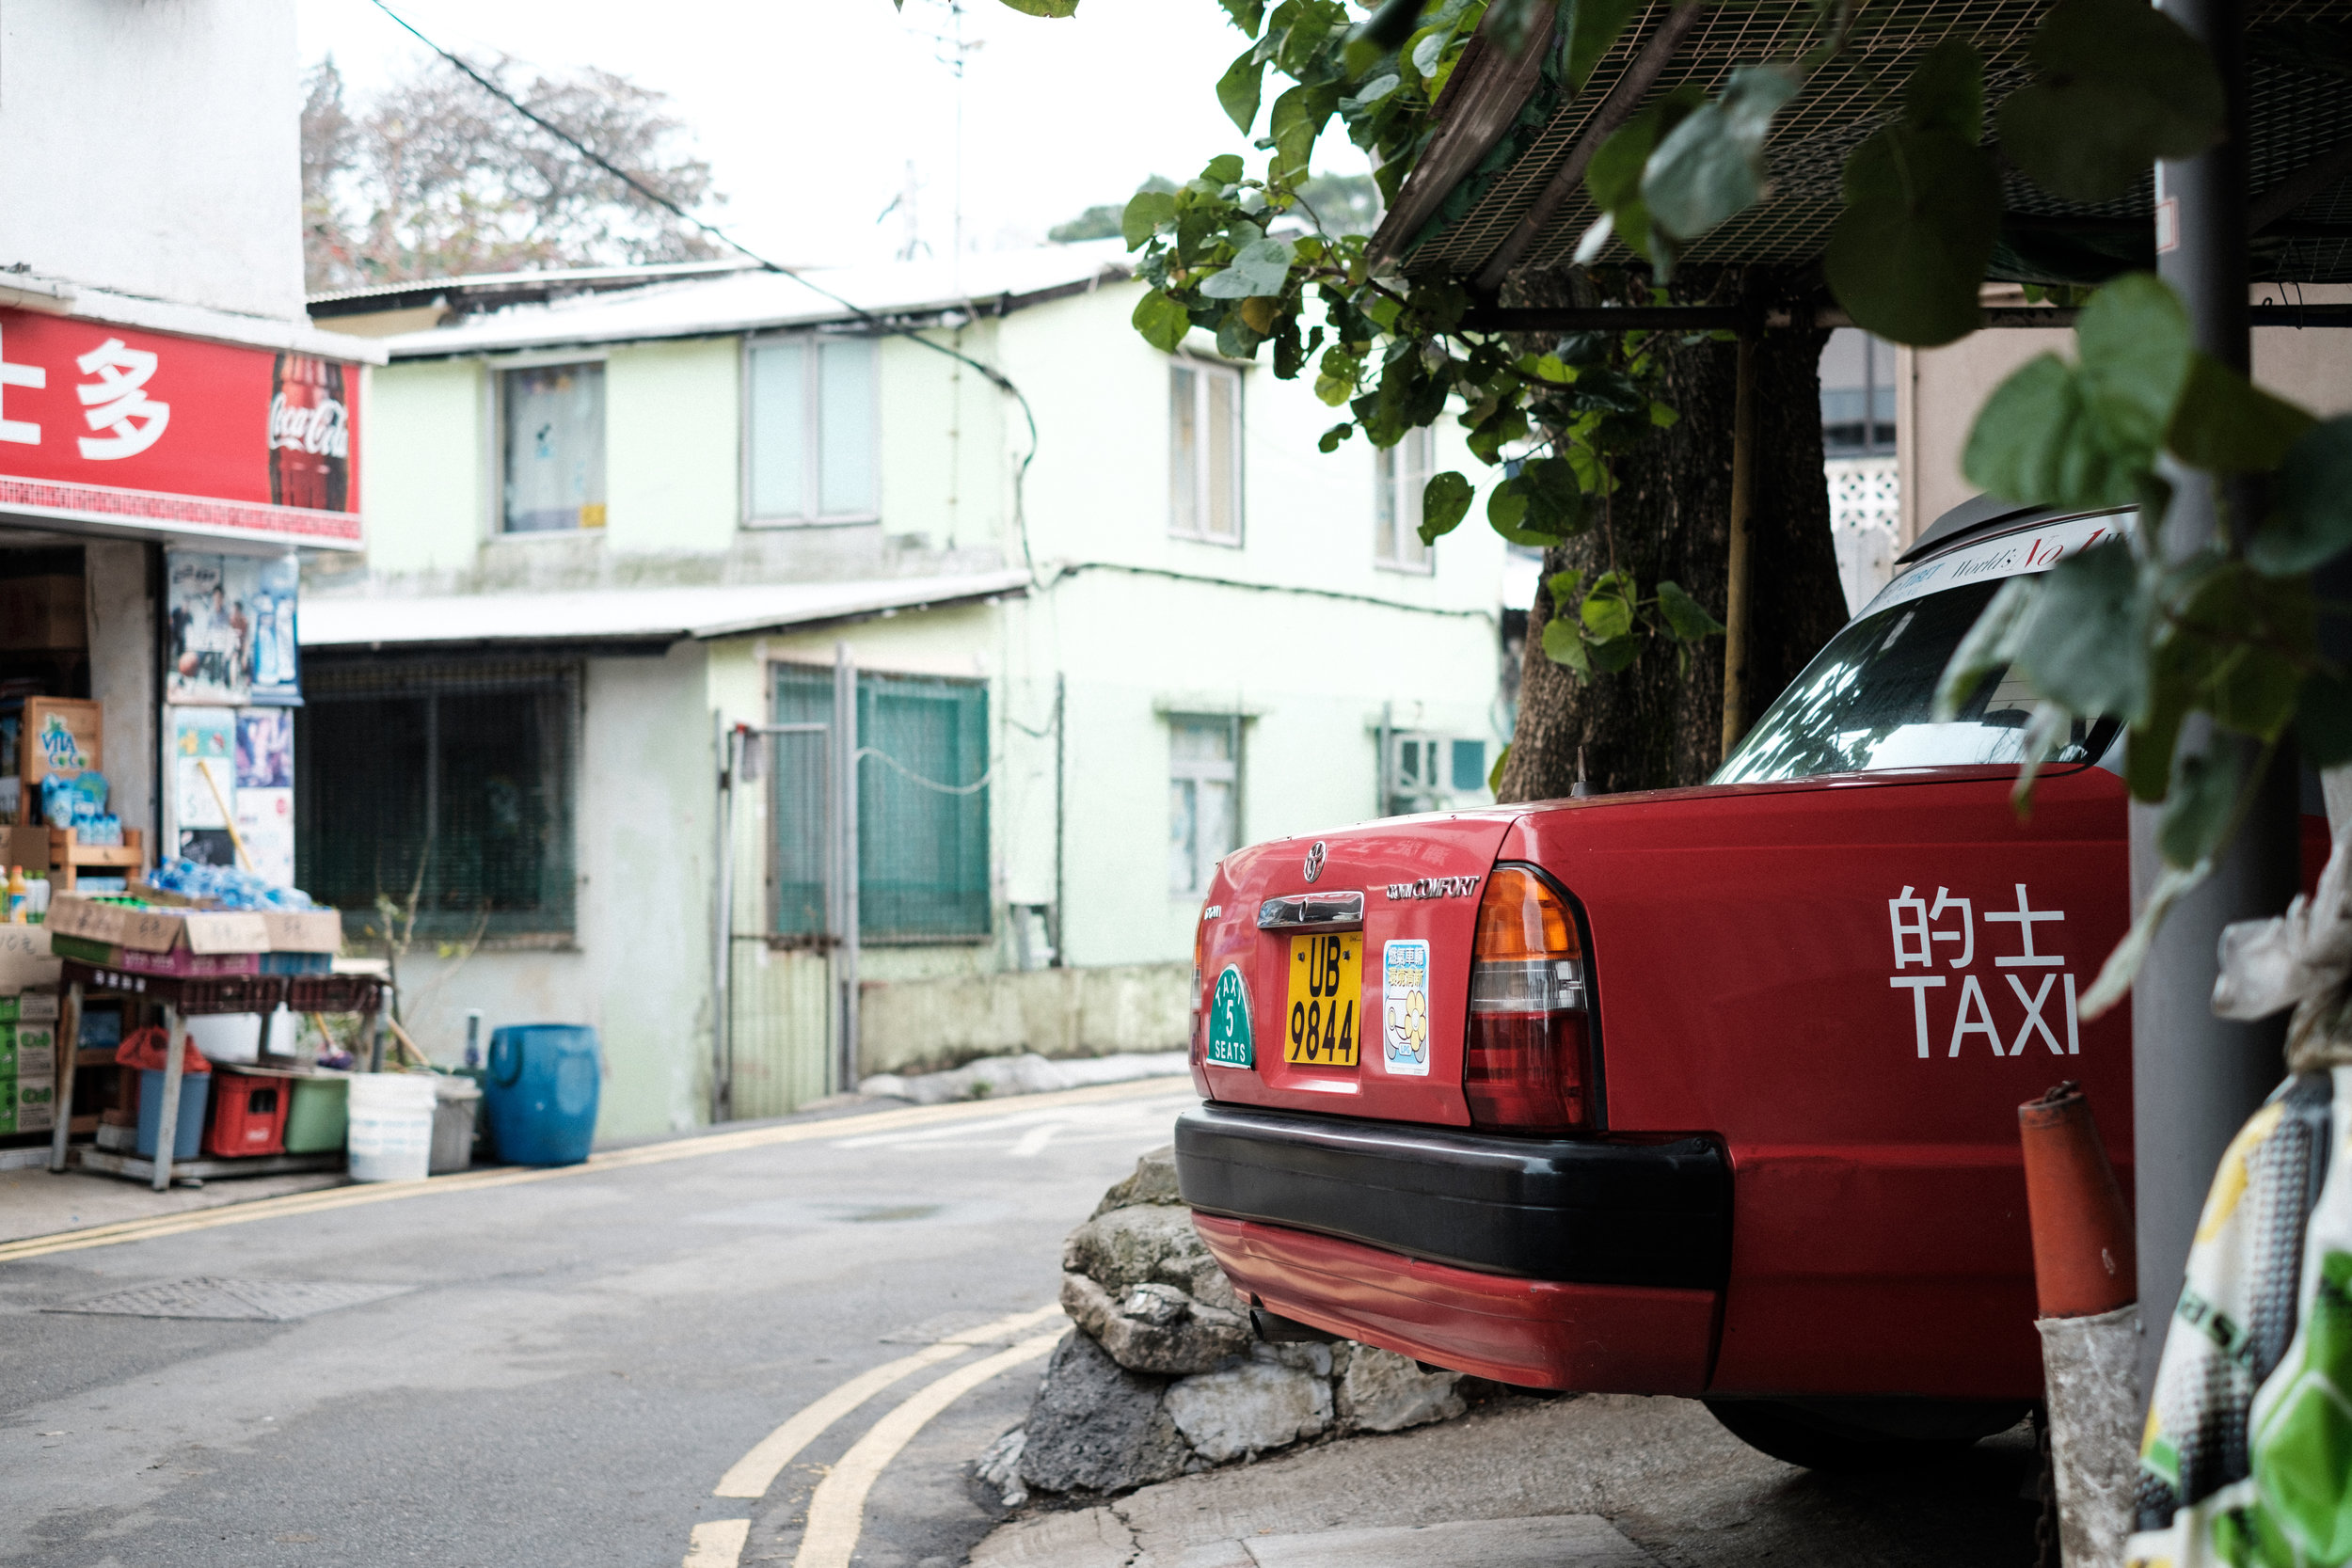 A classic red hong kong cab is parked in a garage in Shek O